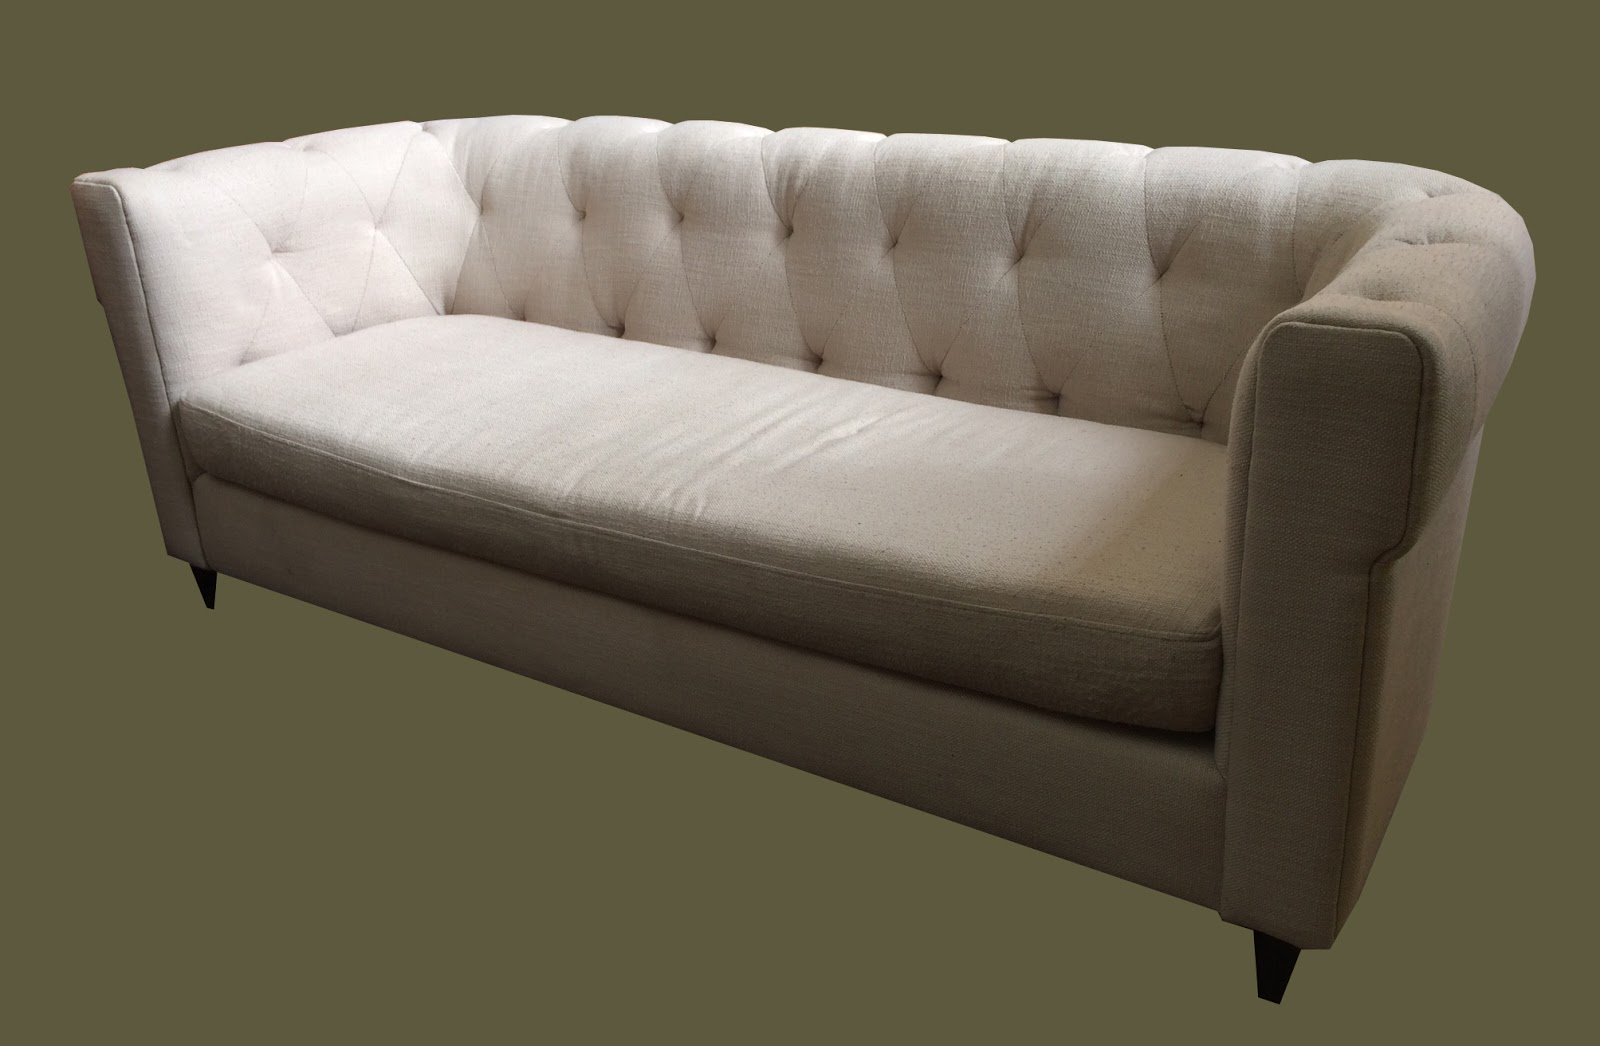 curved tufted sofa reupholster bed cost uhuru furniture and collectibles vintage cream small scale